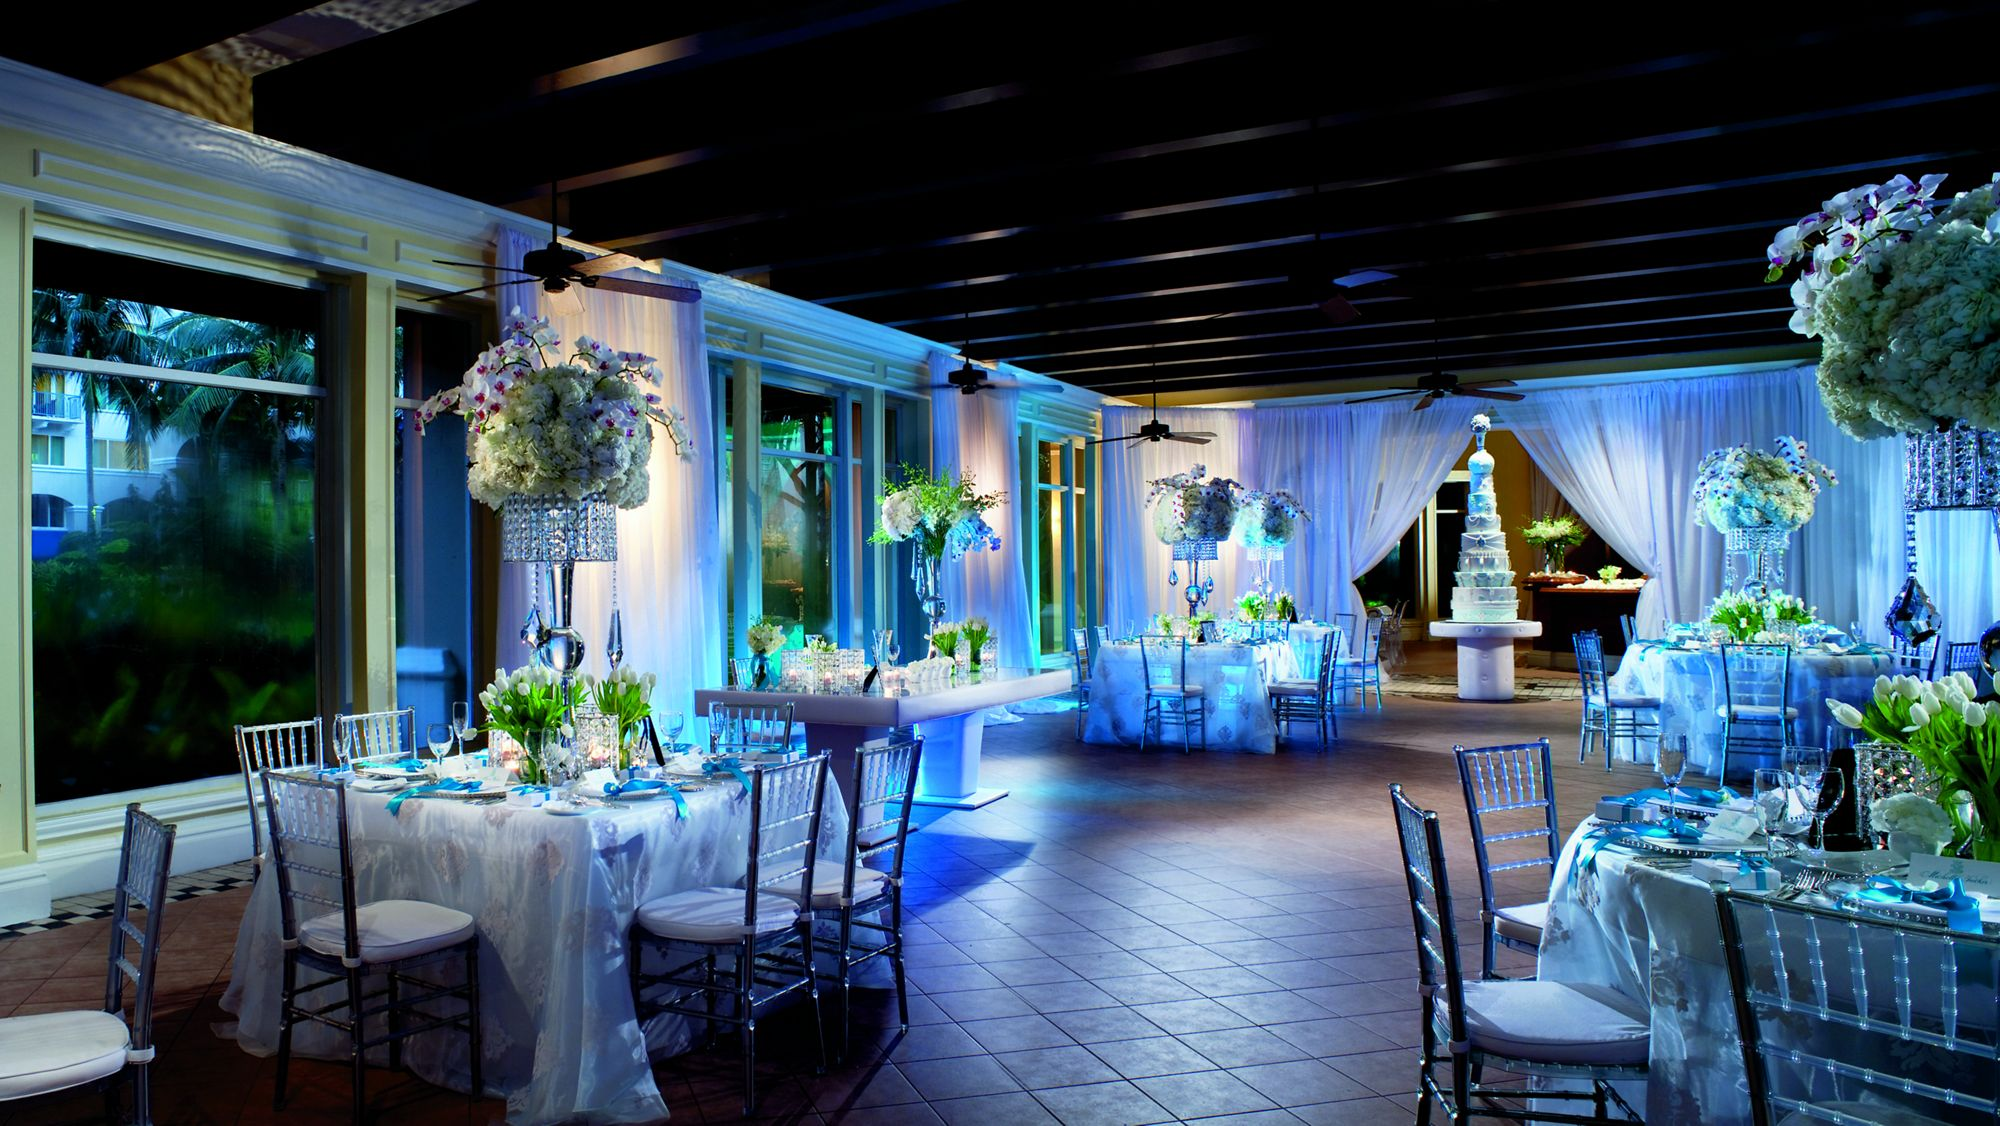 Puerto Rico Wedding.San Juan Puerto Rico Destination Wedding The Ritz Carlton